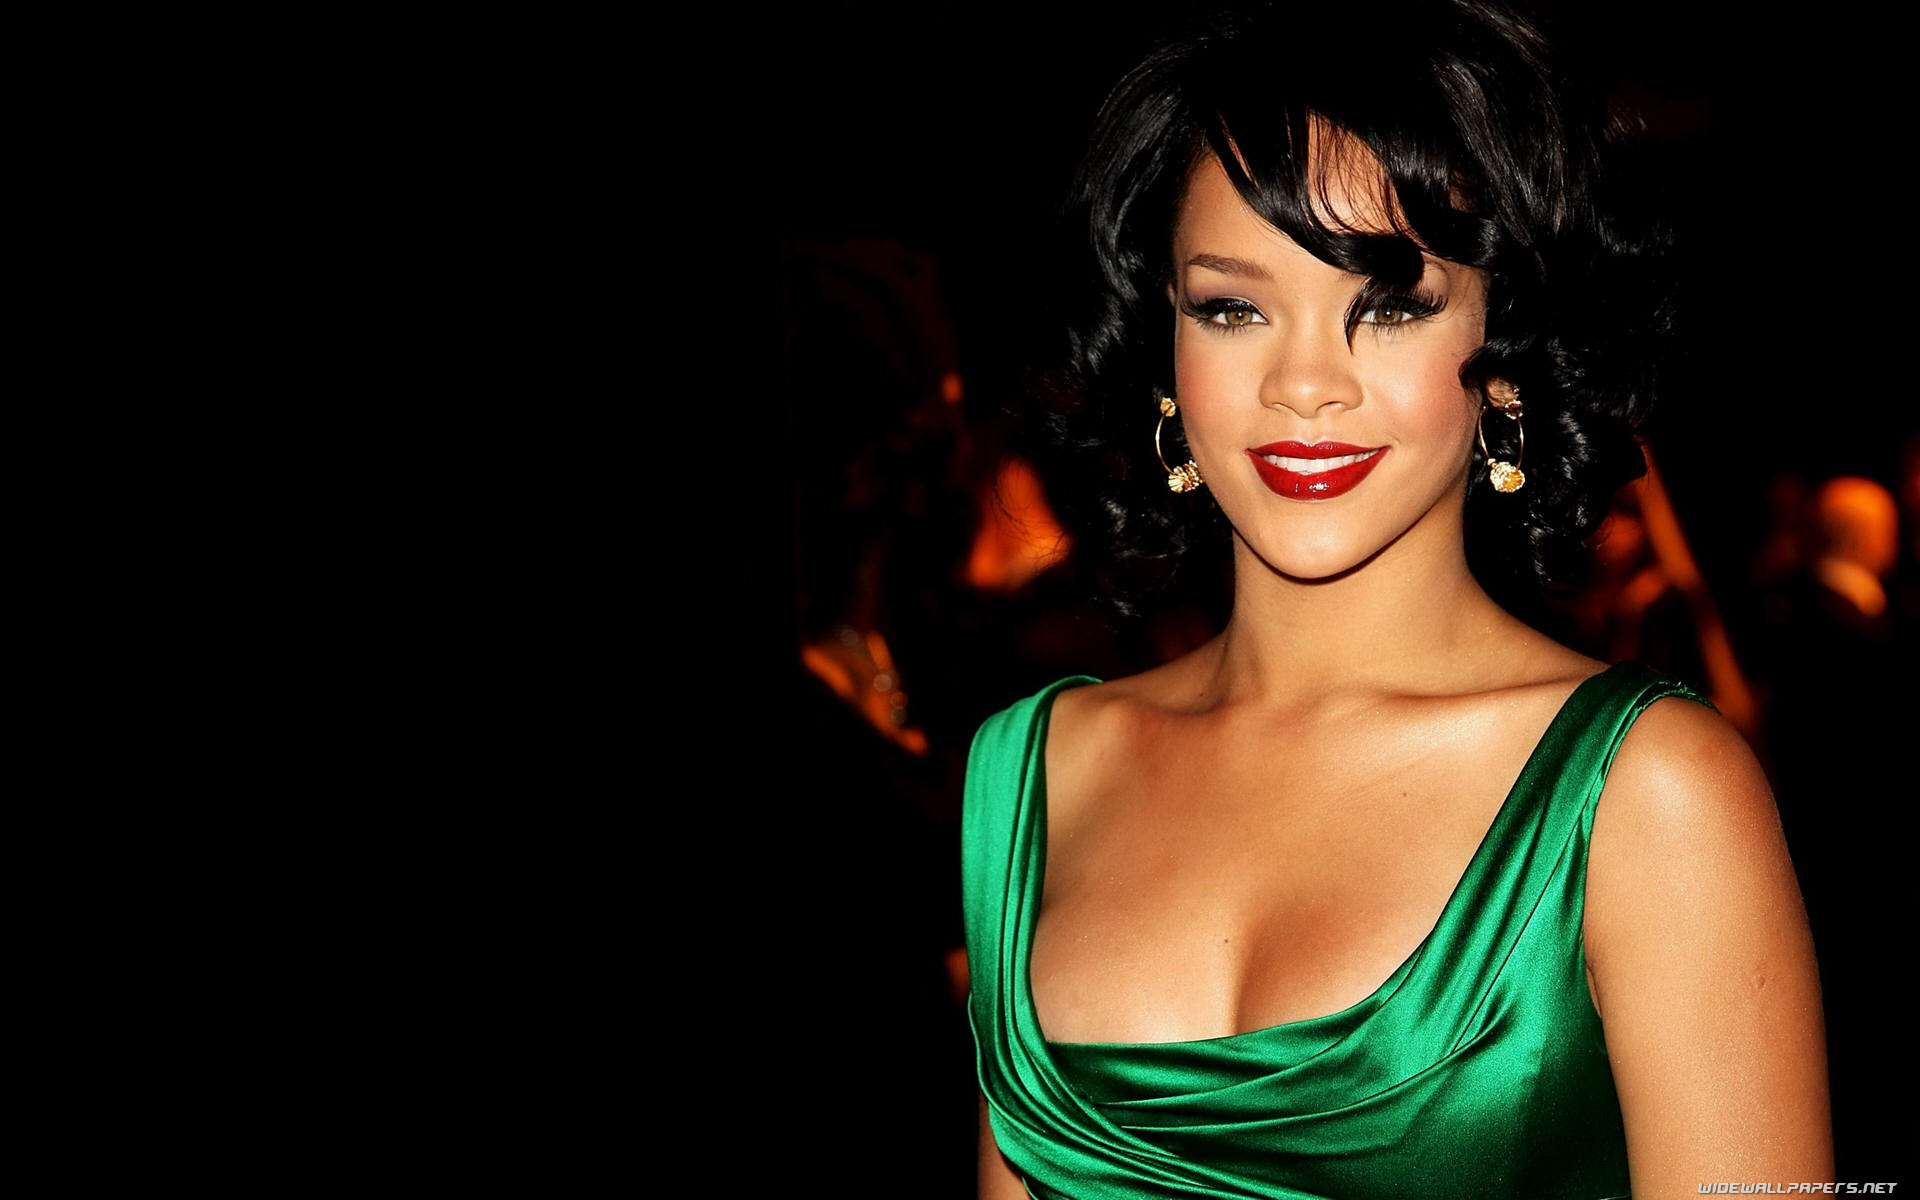 rihanna celebrity desktop wallpapers hd and wide wallpapers